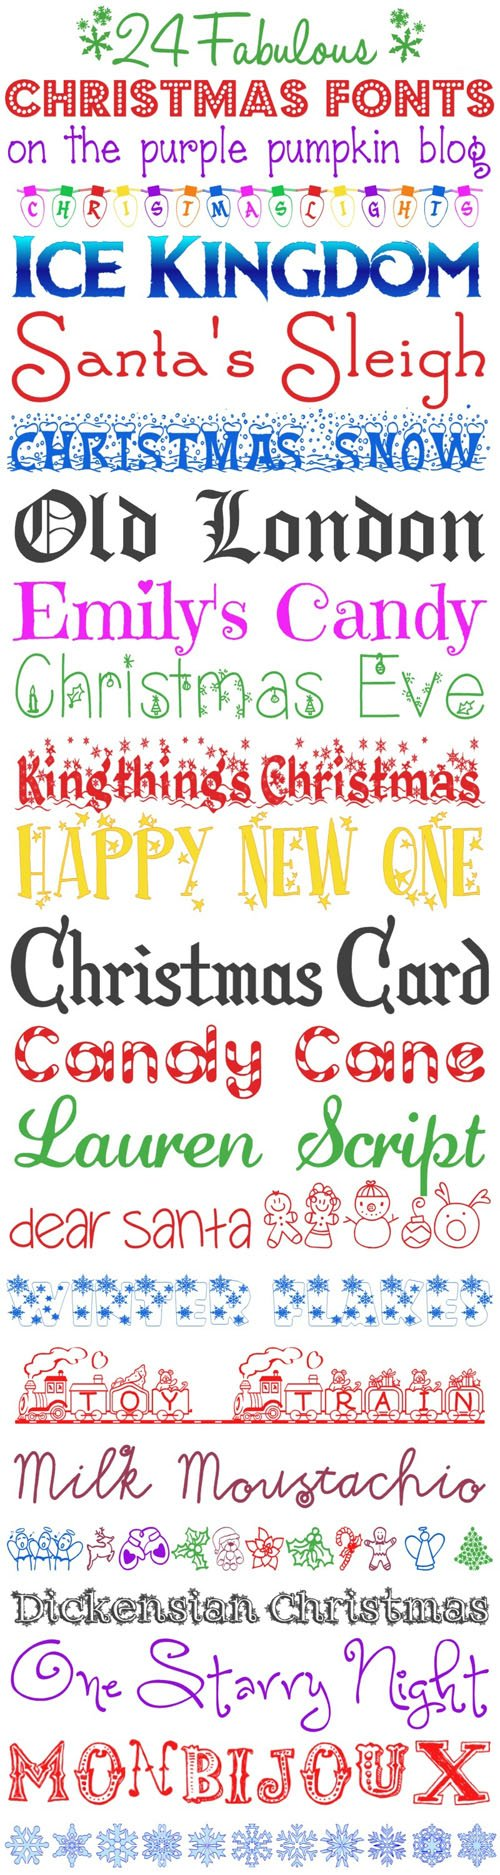 24 Fabulous Christmas Fonts (TTF/OTF)